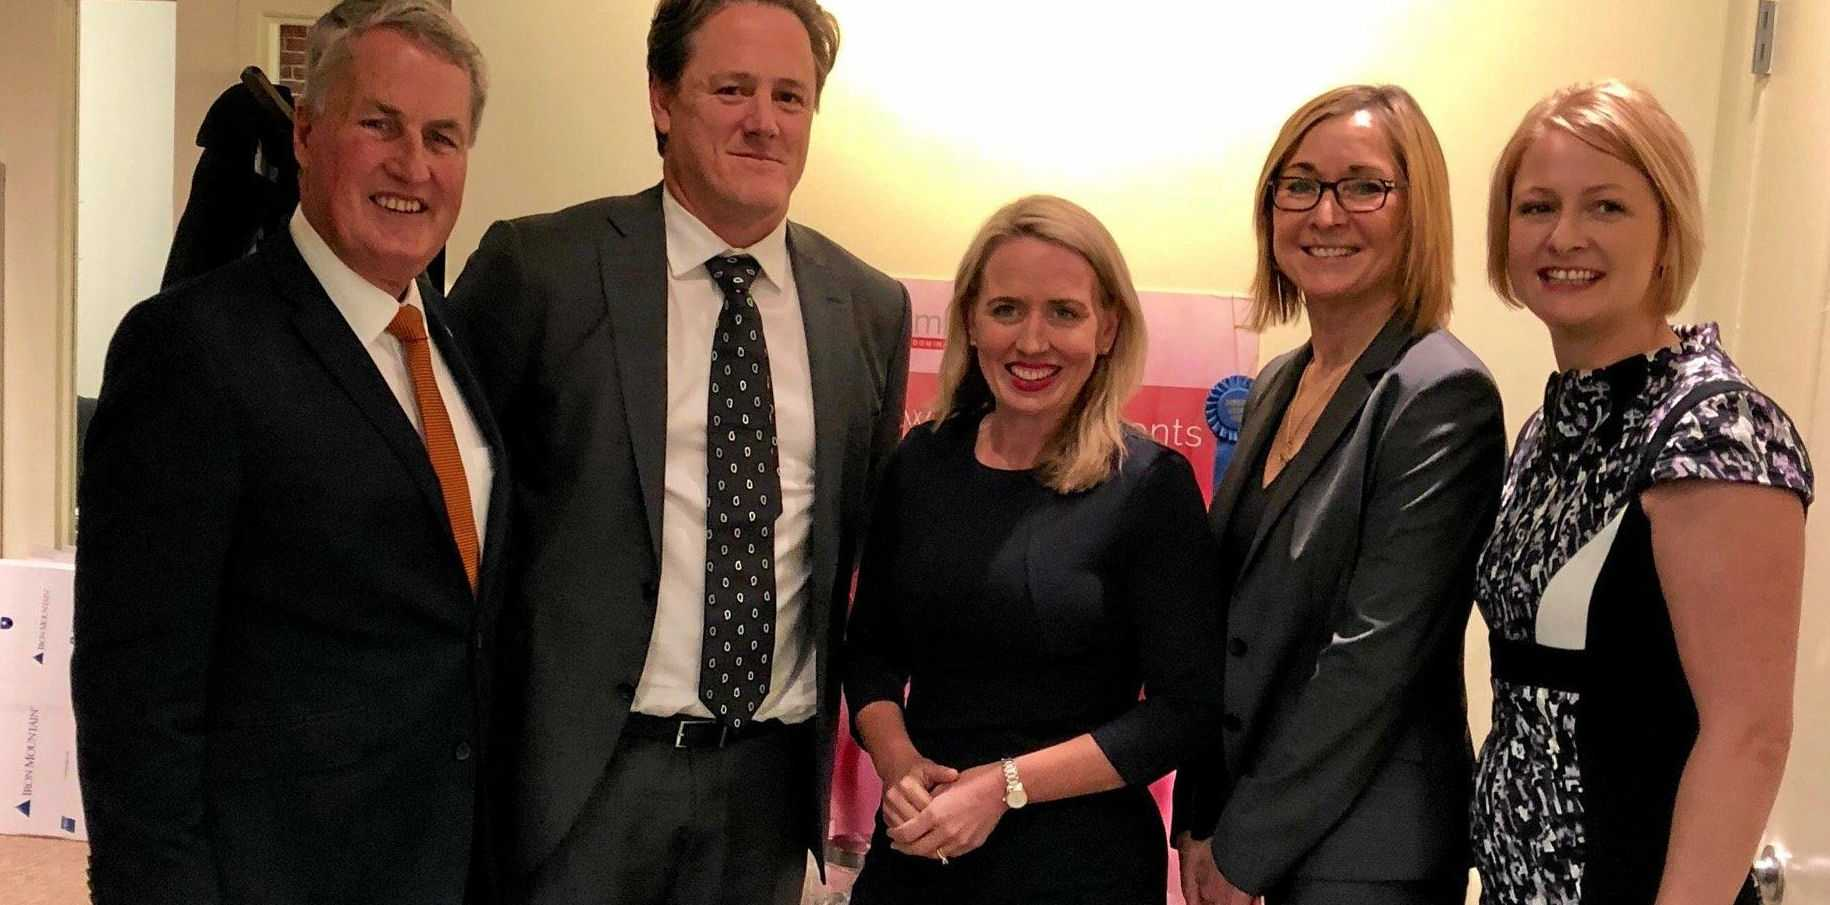 Mackay Mayor Greg Williamson (left), founder of the Coral Sea Centre Research Institute Dr James Daveson, State Innovation Minister Kate Jones, Founder of Immusan T Leslie Williams, and Mackay deputy mayor Amanda Camm at BIO Convention 2018 in the US.